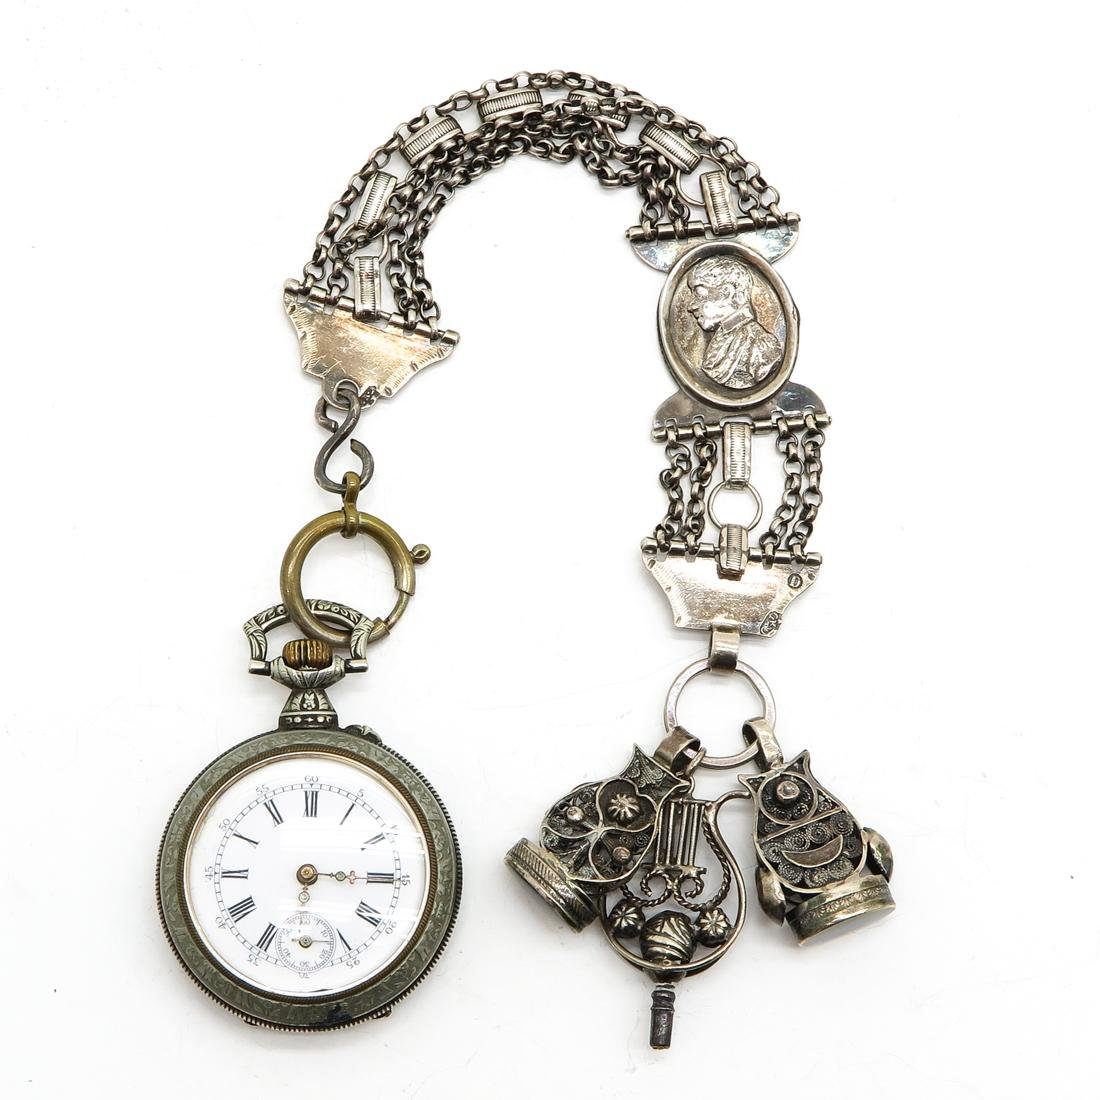 Pocket Watch with Chain and Fobs